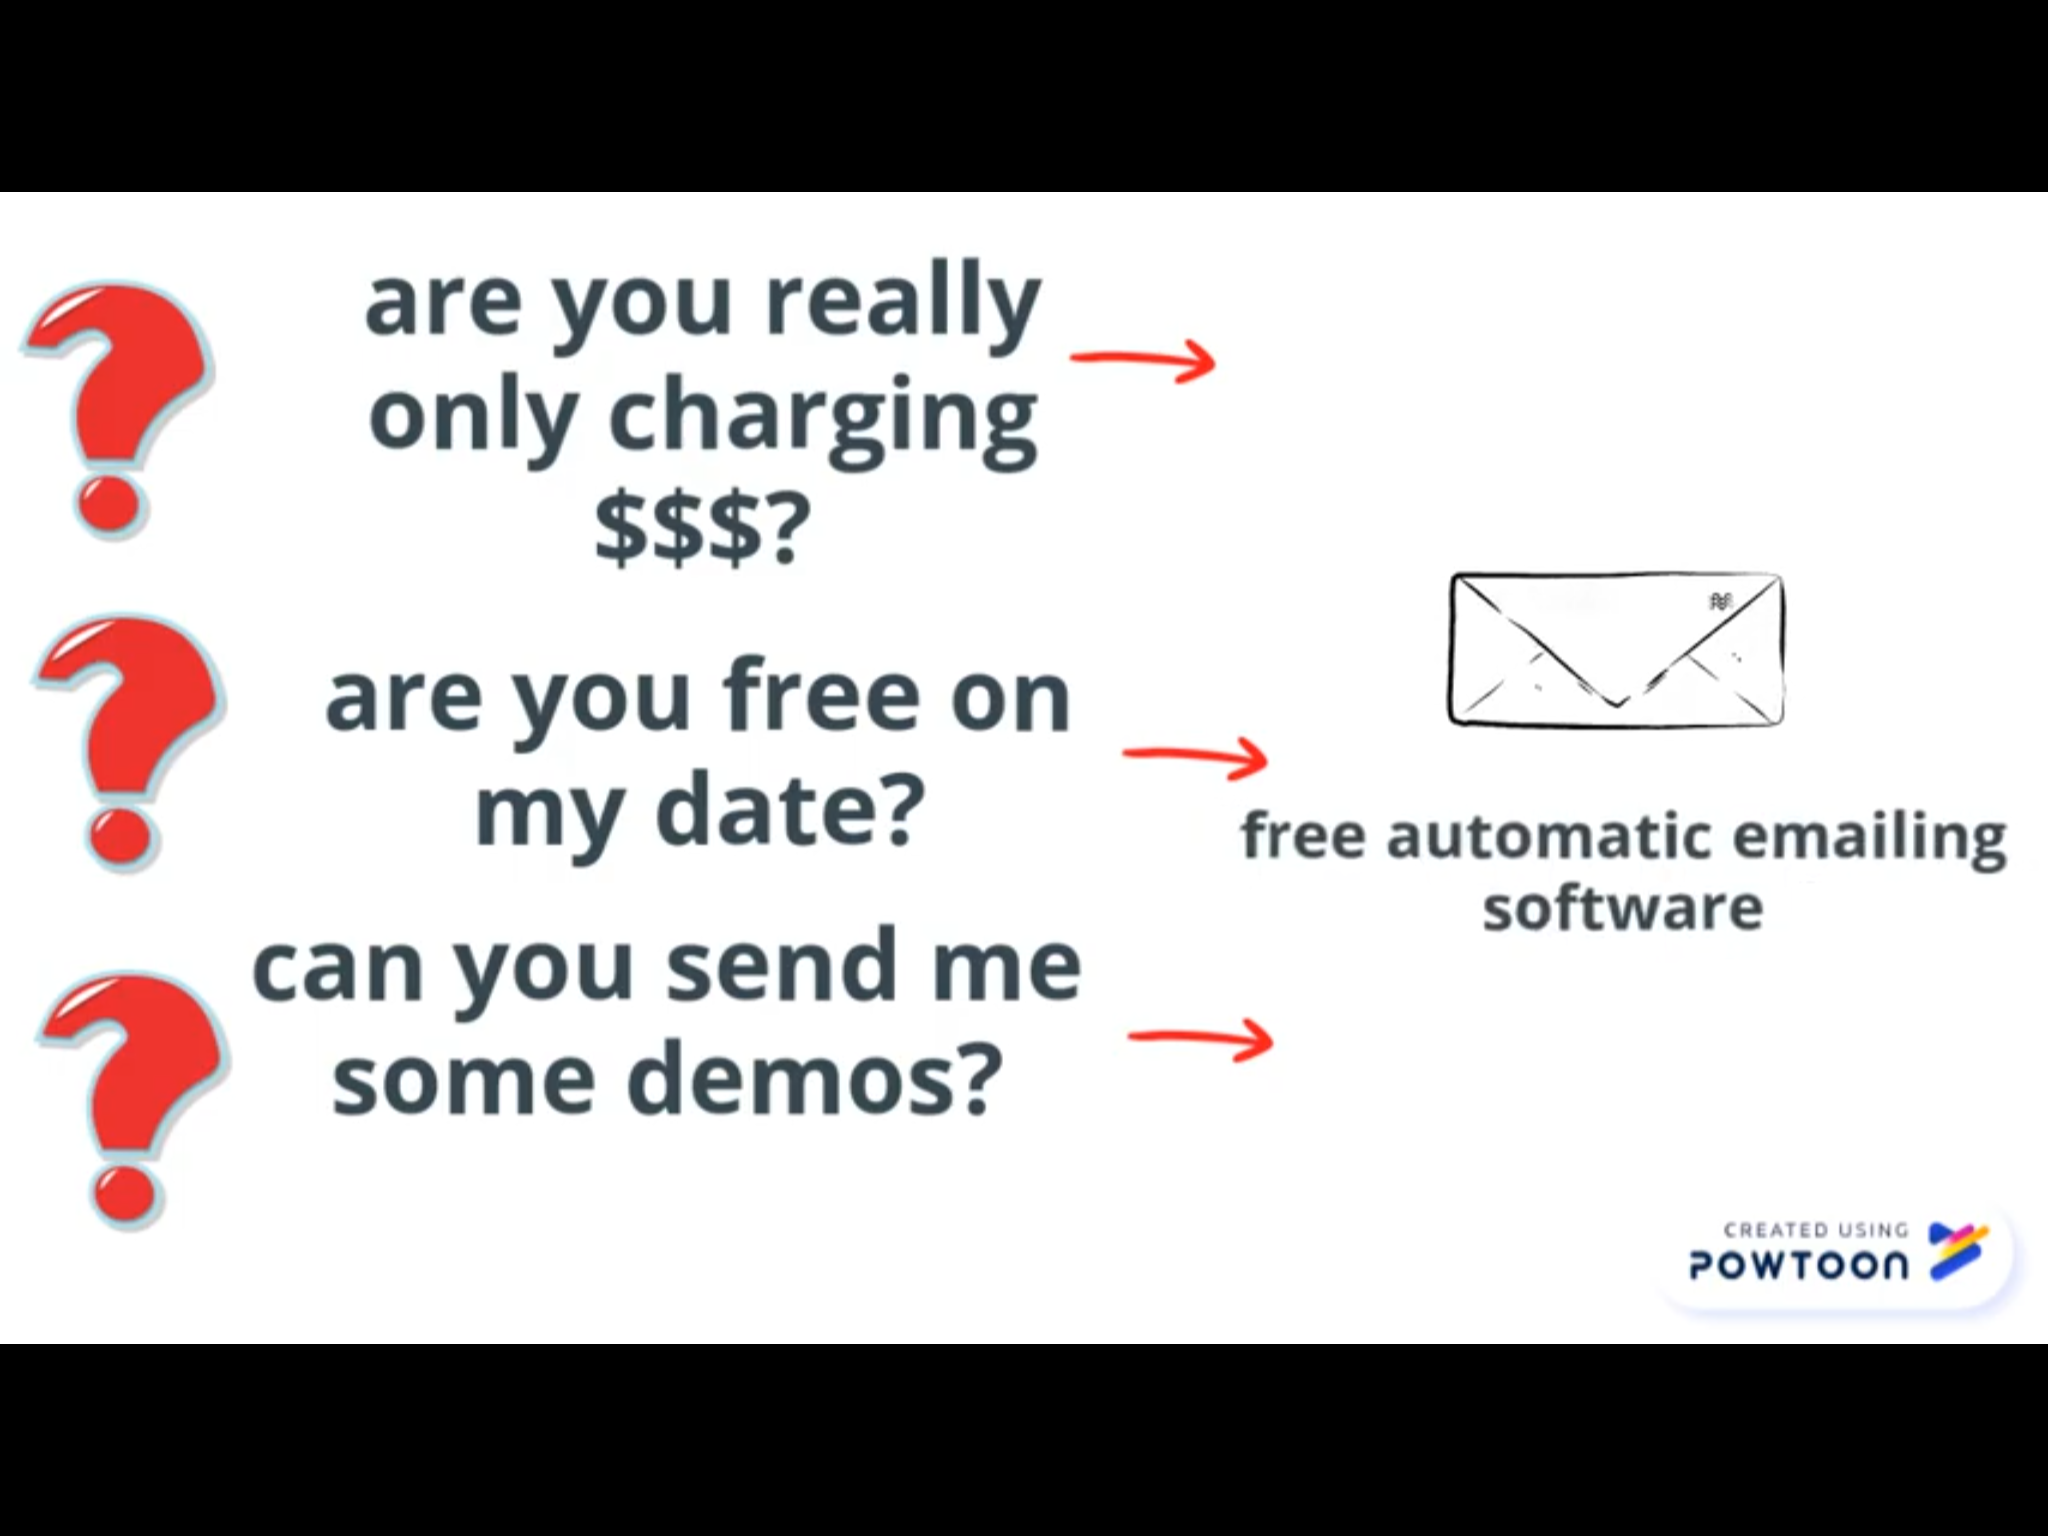 We Take an Email - All three questions are answered by the chatbot who asks for an email address that is then passed to our automatic emailing software. Yeah, this will be free too, if you do it my way.